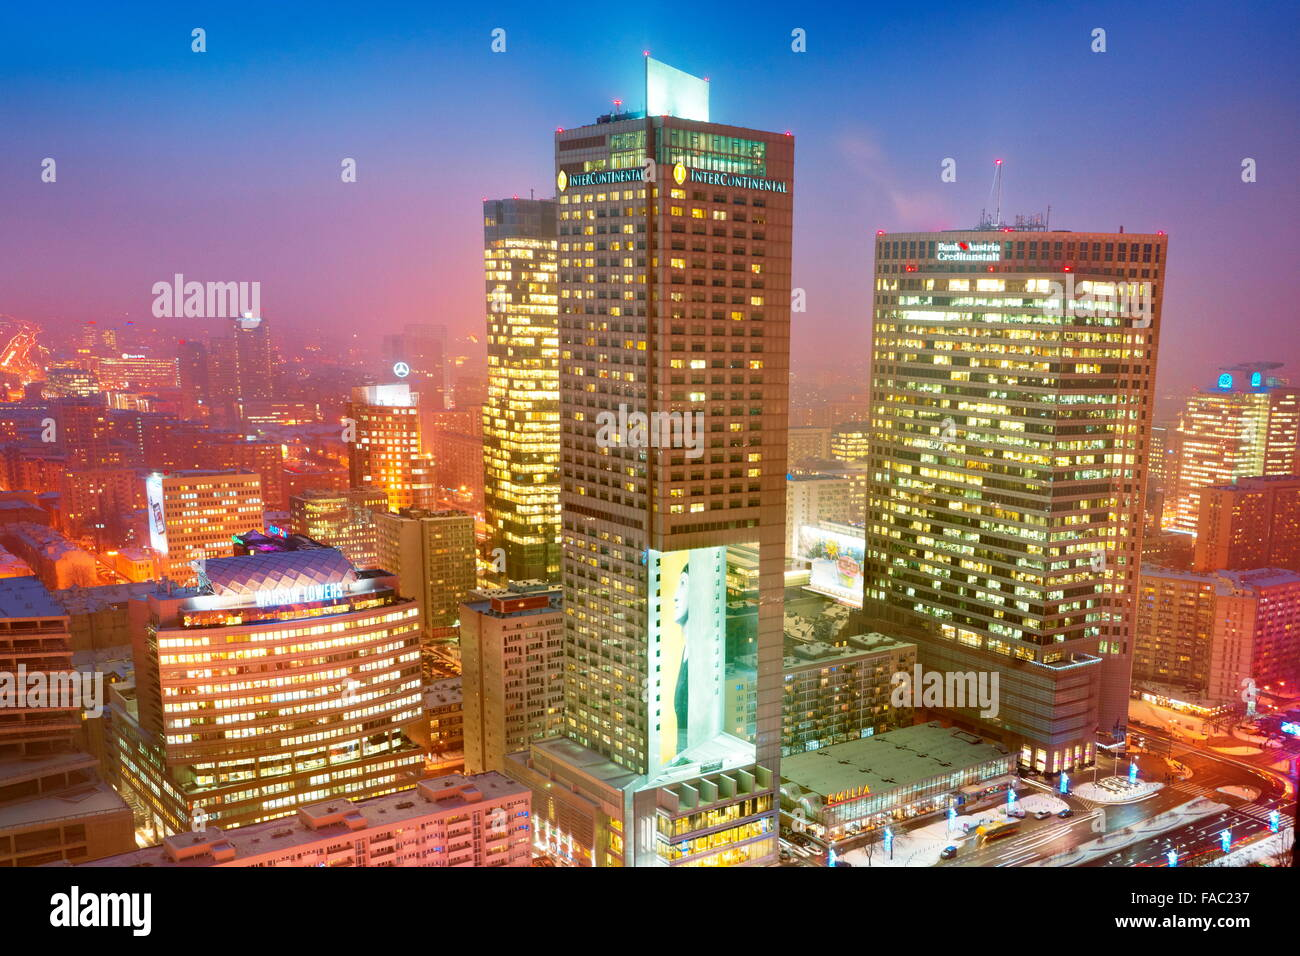 Quartier moderne de Varsovie, Pologne skyline Photo Stock